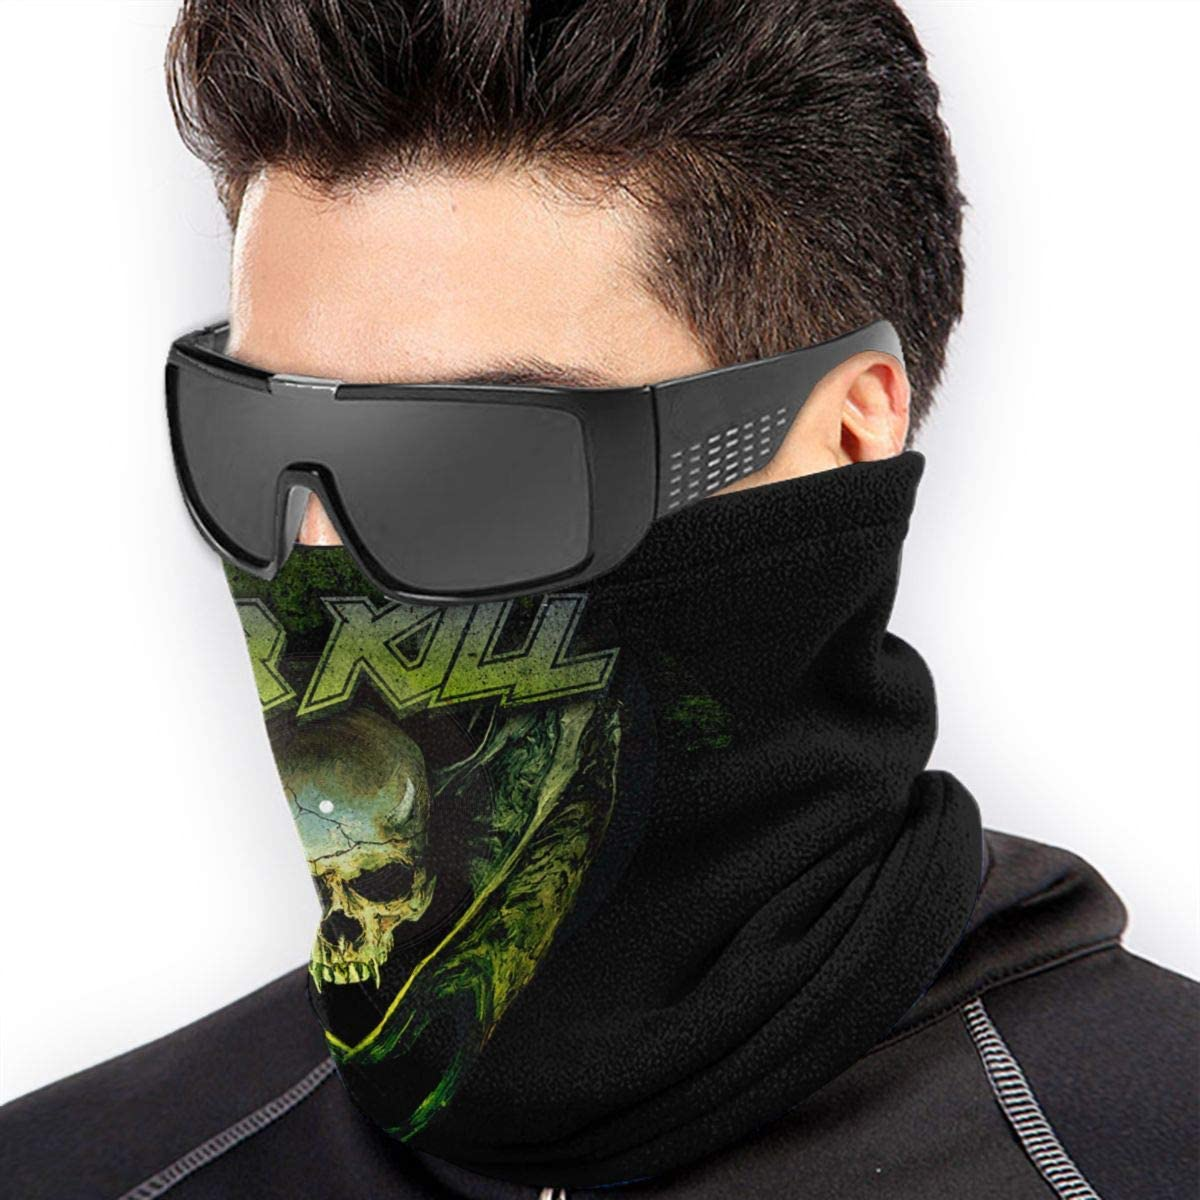 Overkill Highly Elastic Warm Microfiber Neck Thermal Mask Scarf Unisex Windproof Suitable For Winter